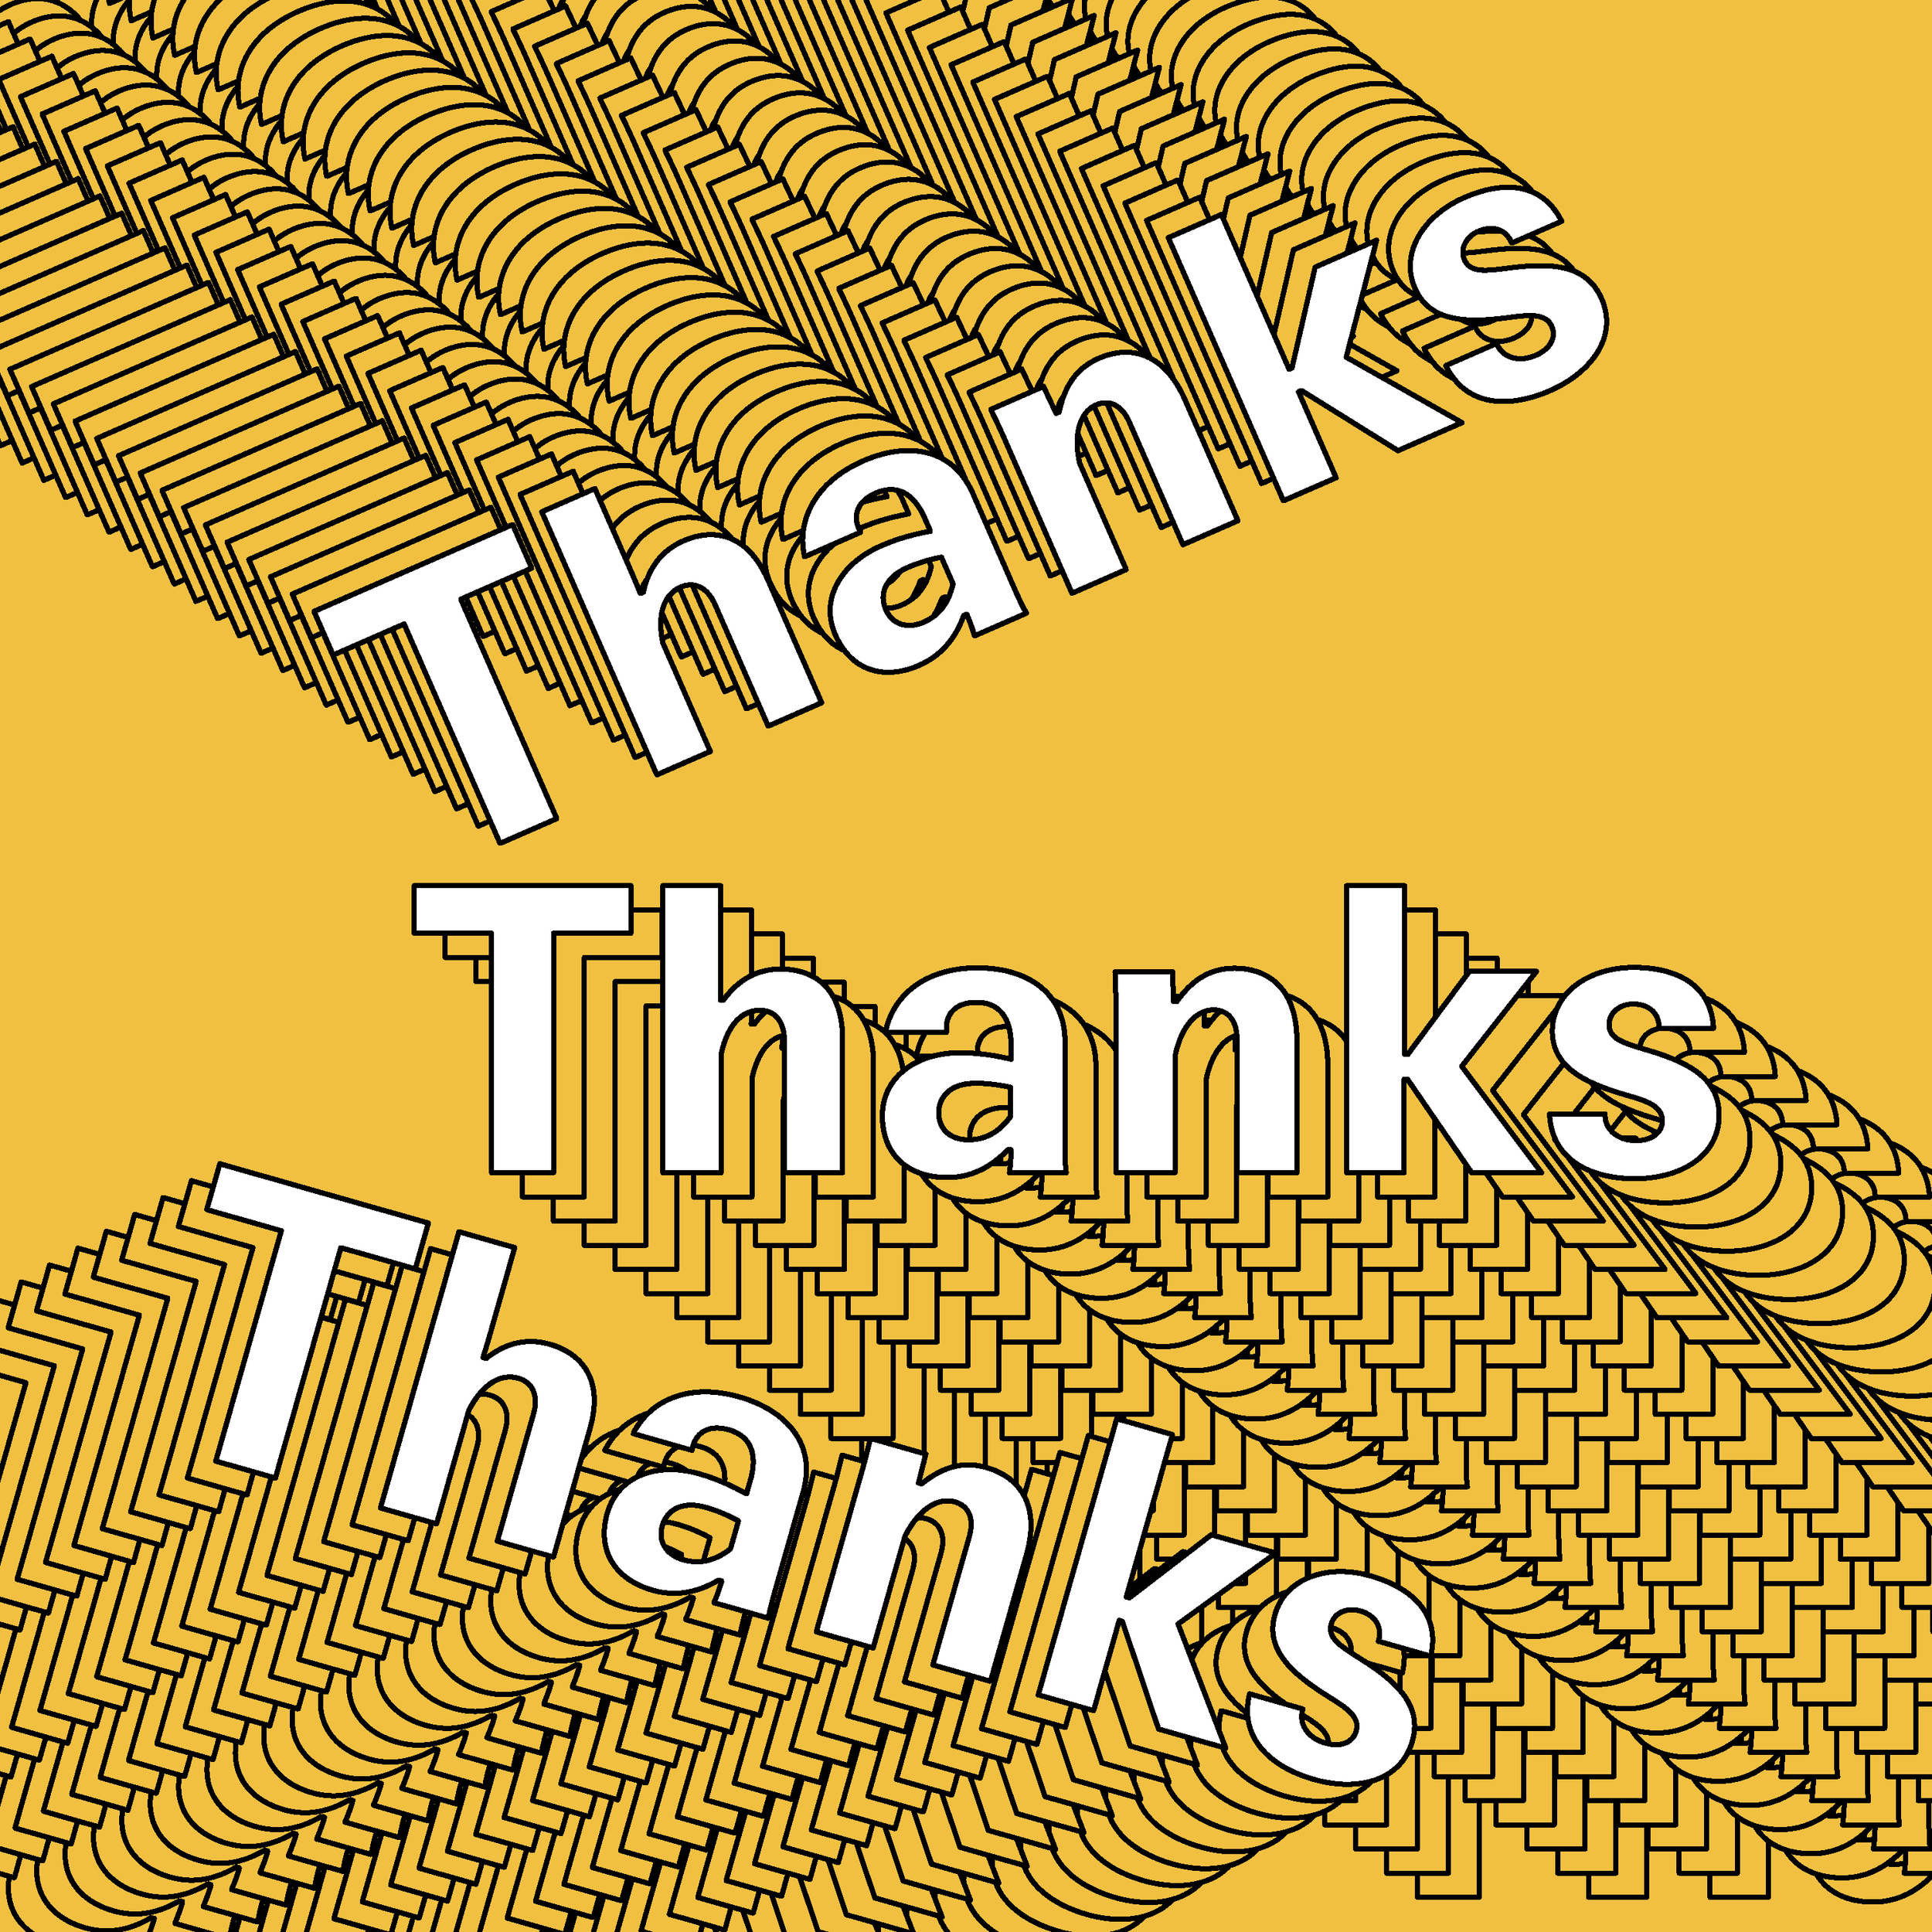 3xTHANKS_yellow-04.png